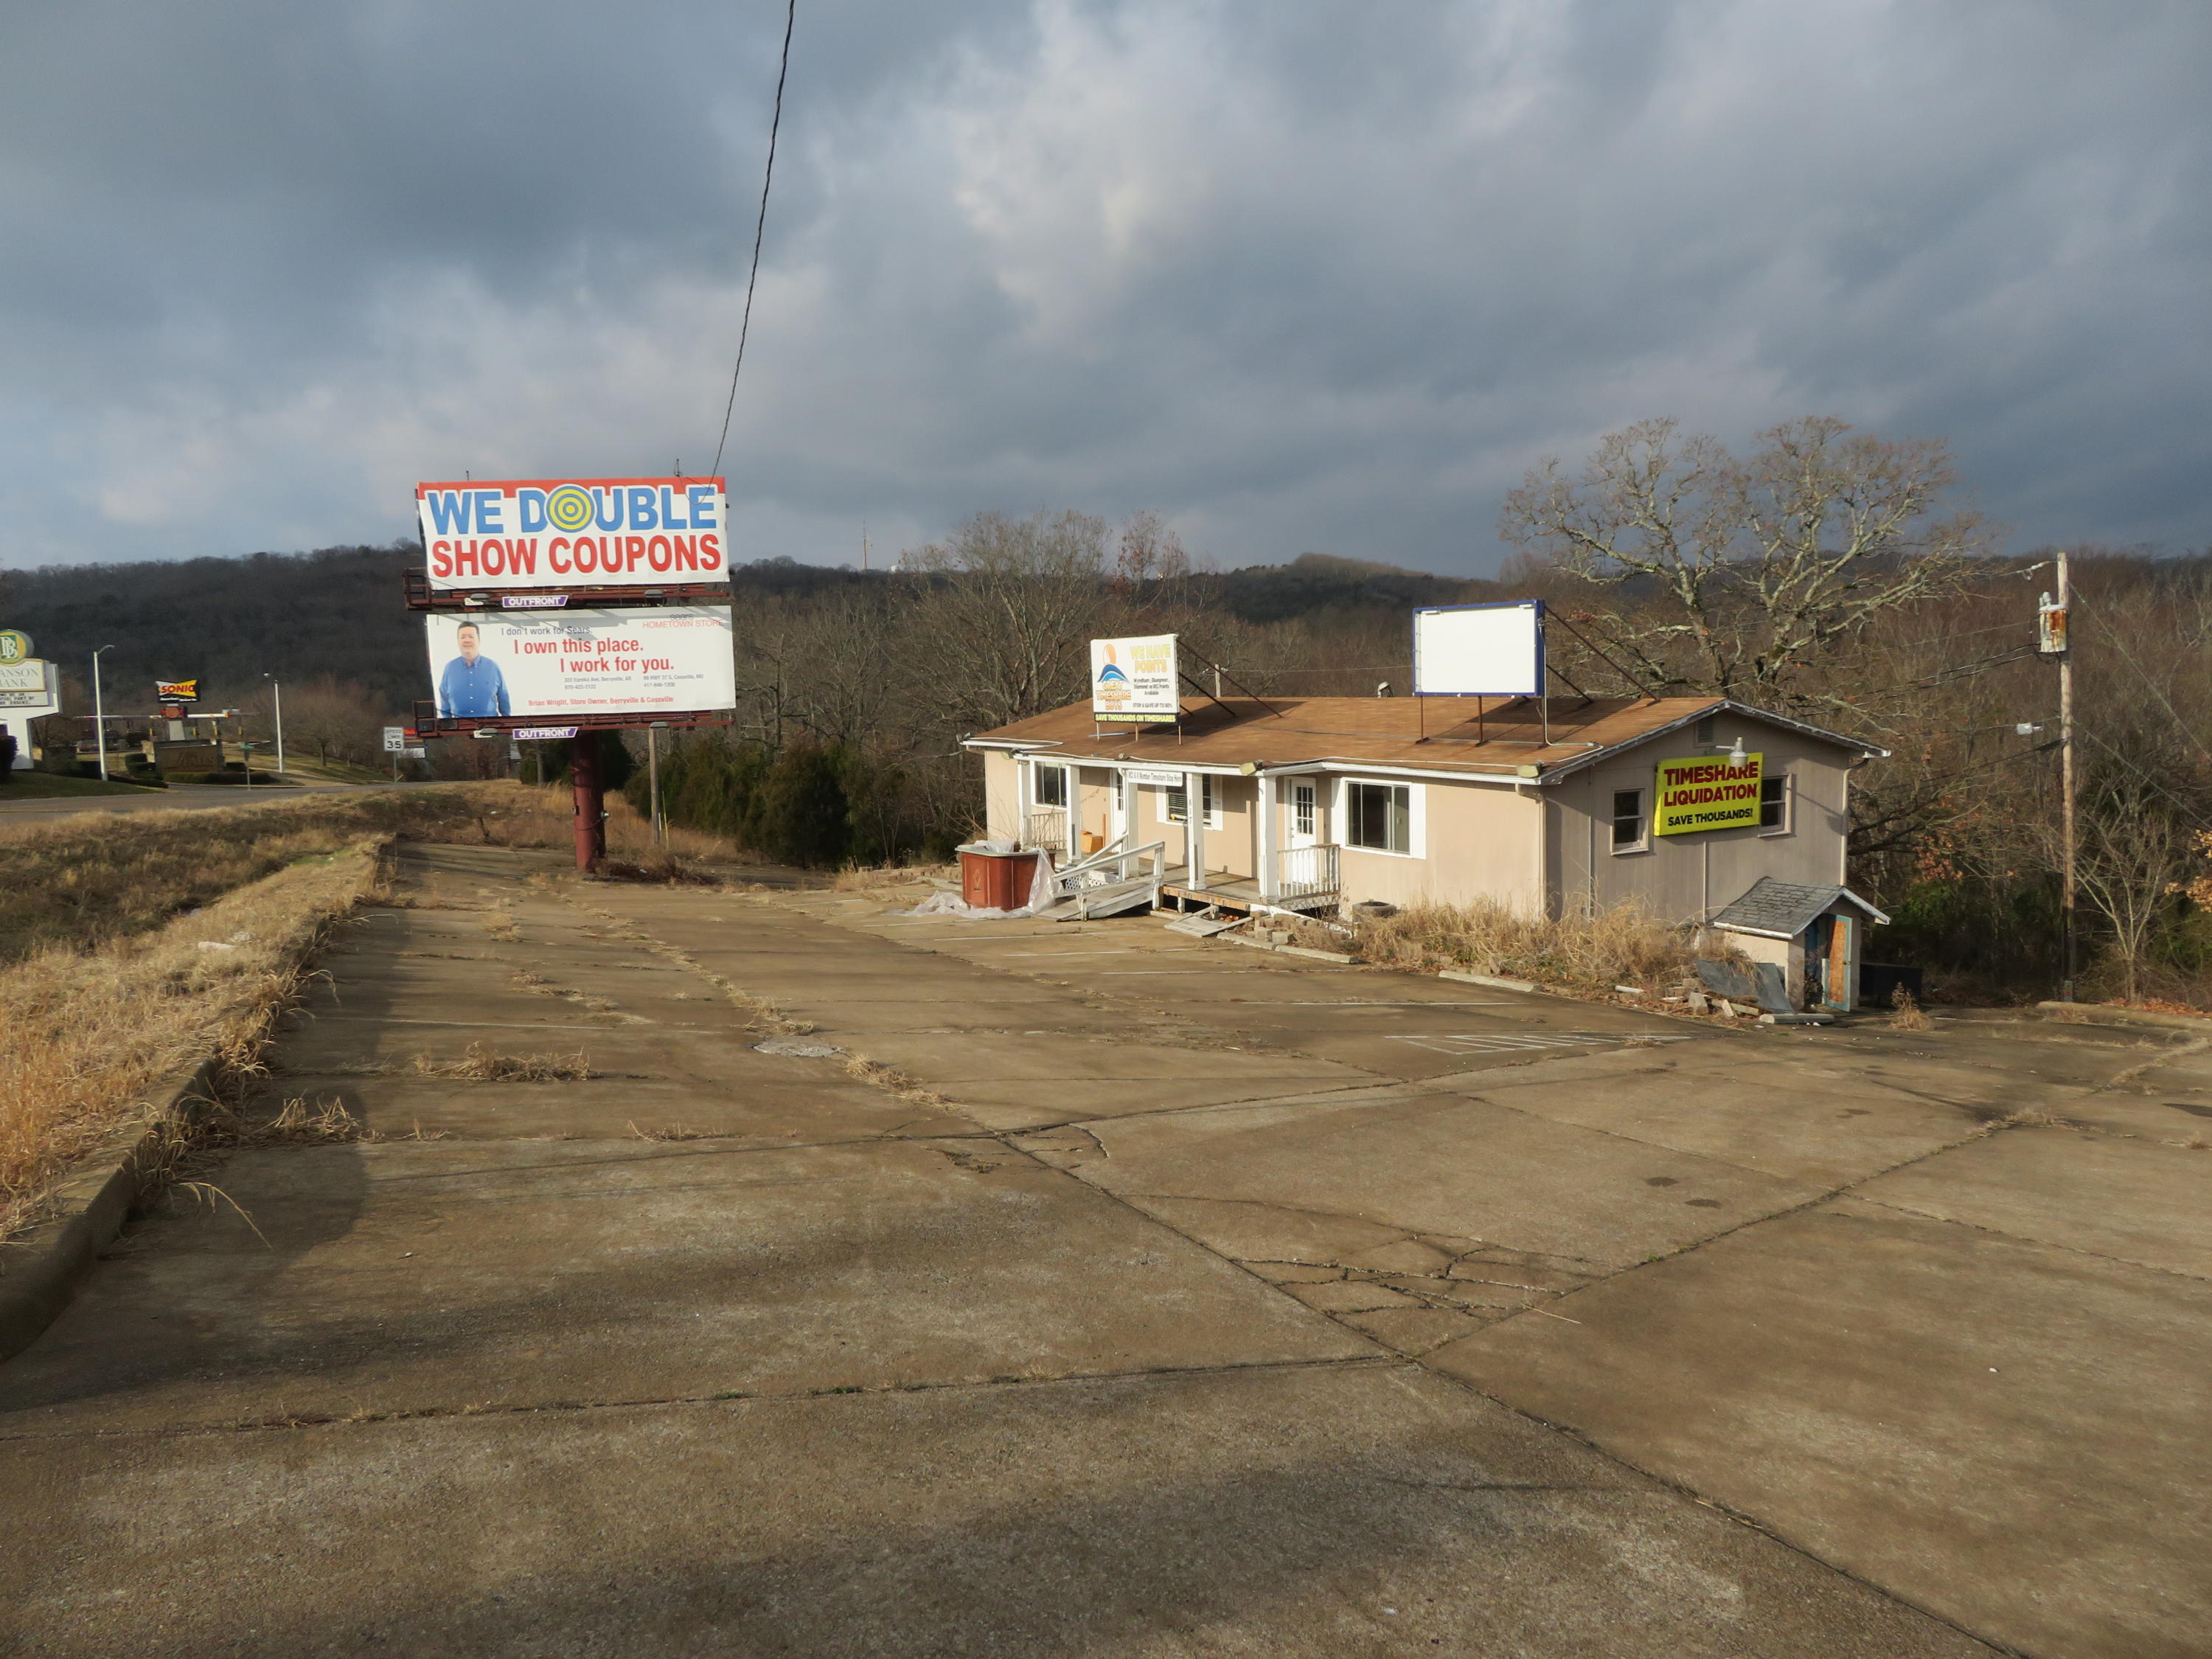 817 State Hwy 165 Branson, MO 65616